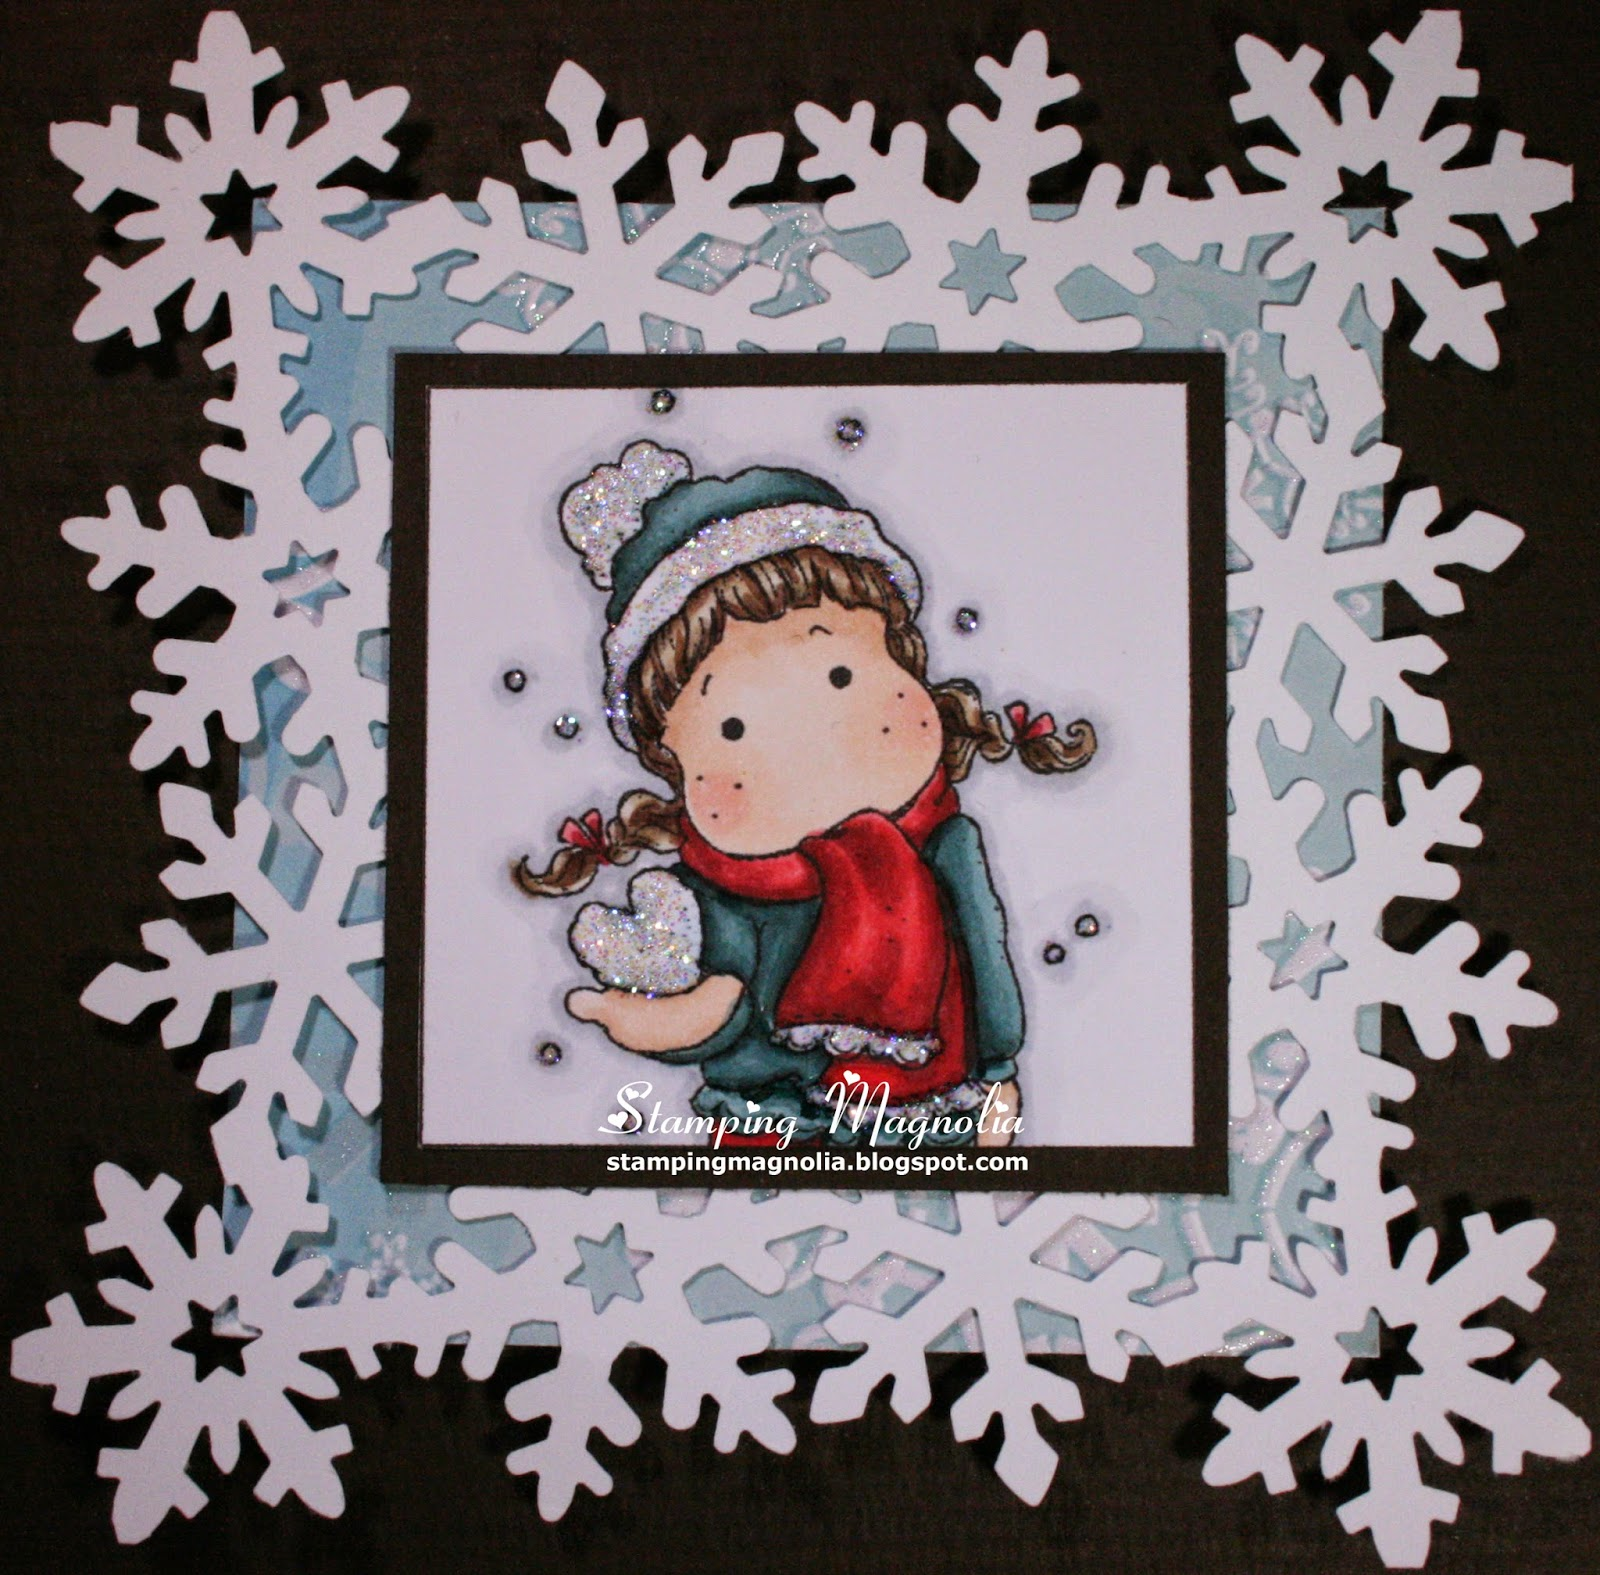 Coloring Magnolia Stamp Sweet Christmas Dreams Collection - Tilda with Snow Heart